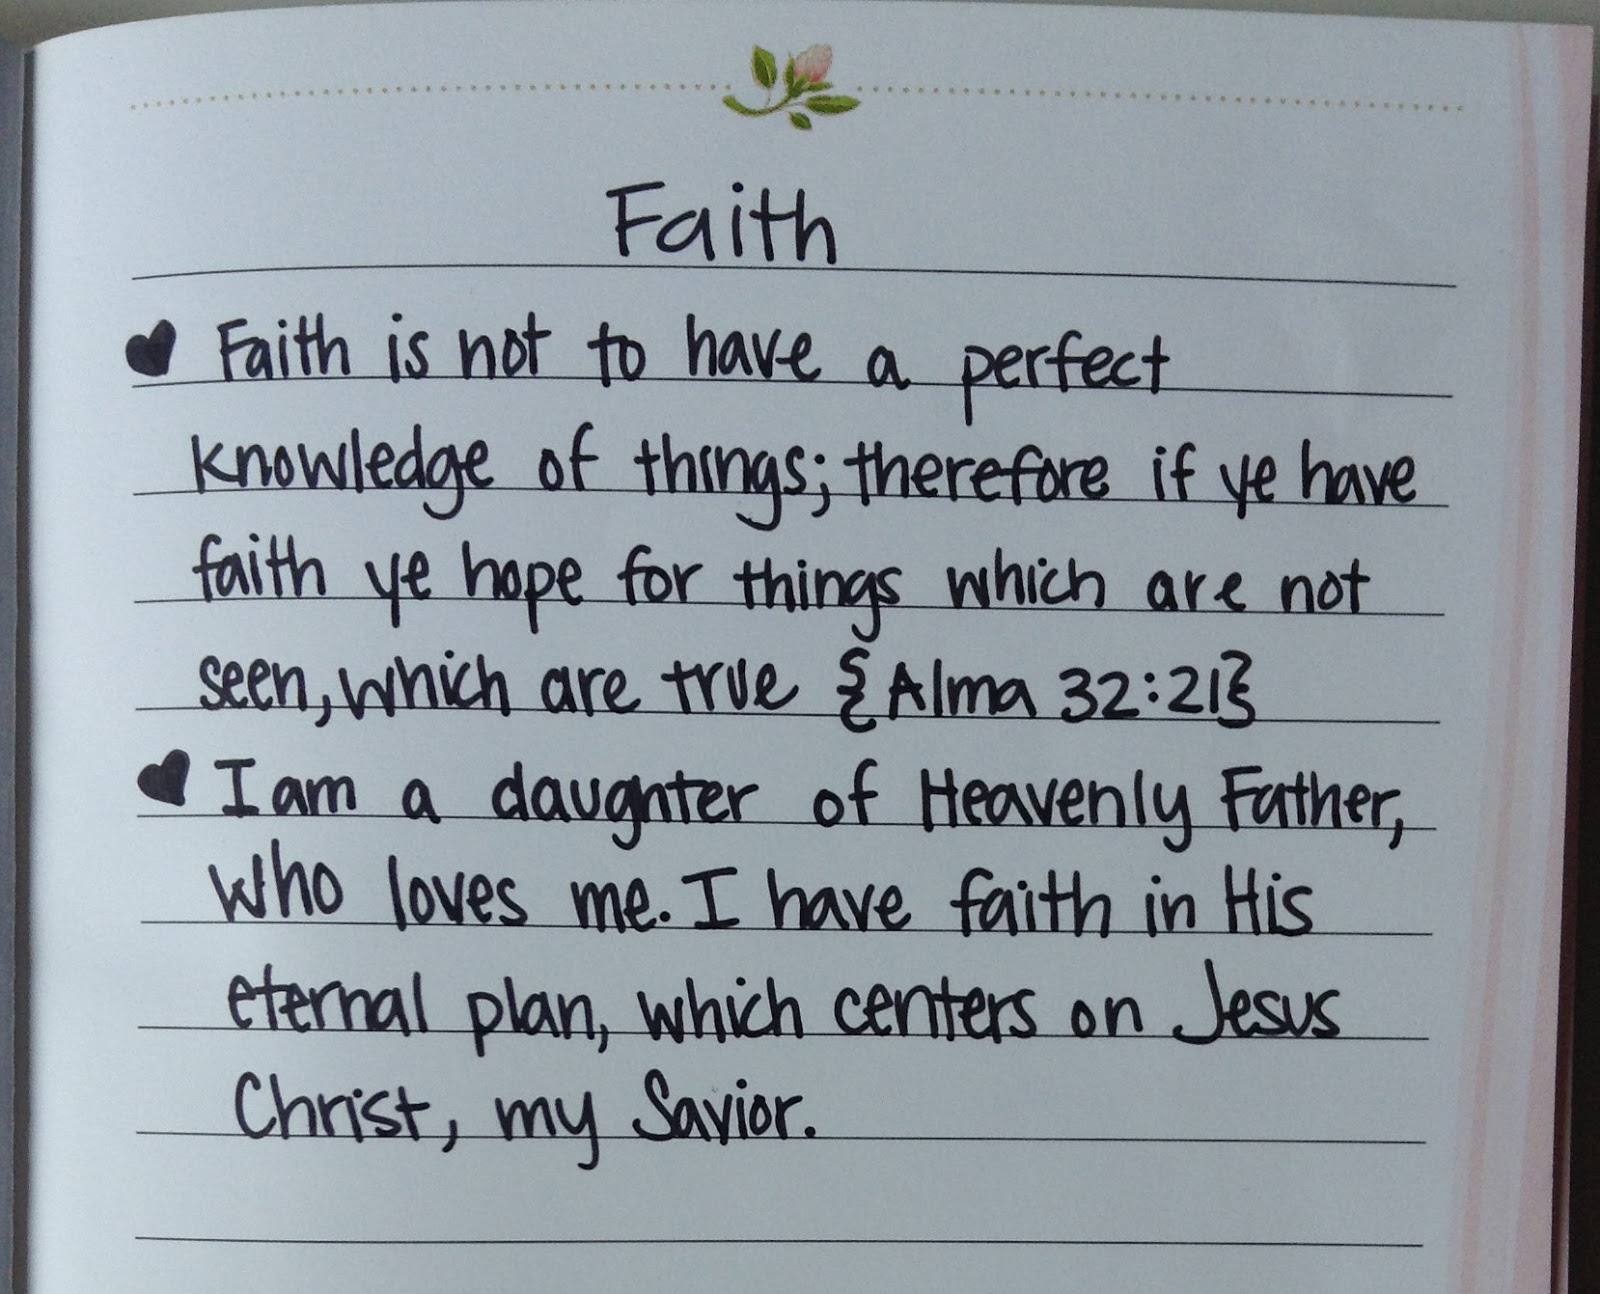 personal statement of faith for a job A pastor had written to me to ask me about my doctrinal position, statement of faith   (some folks at his church want me to come and speak to homeschoolers).